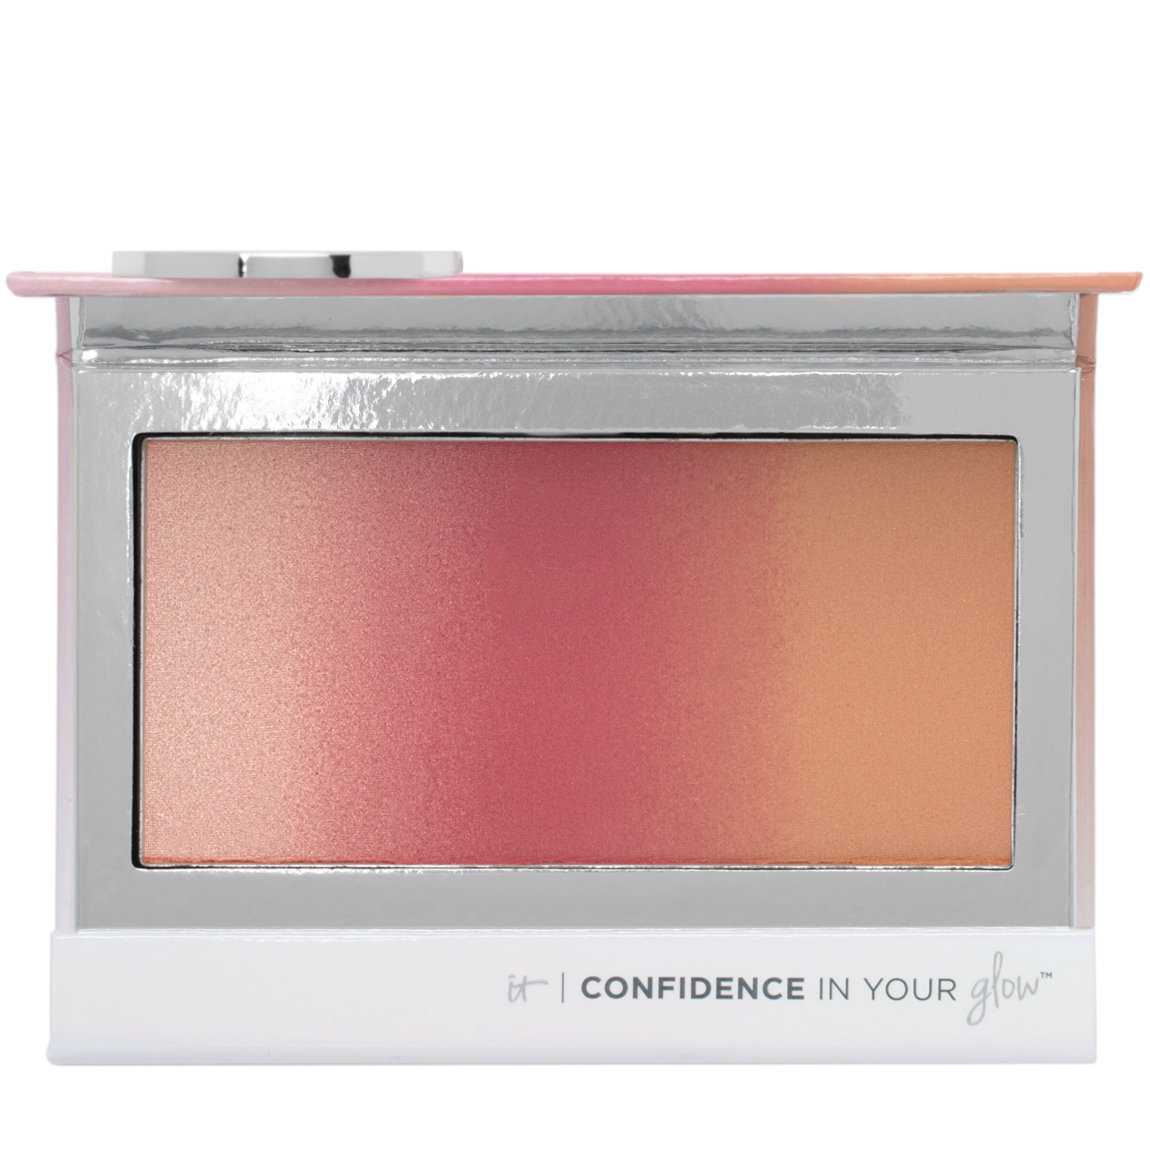 IT Cosmetics  Confidence in Your Glow Natural Glow product swatch.